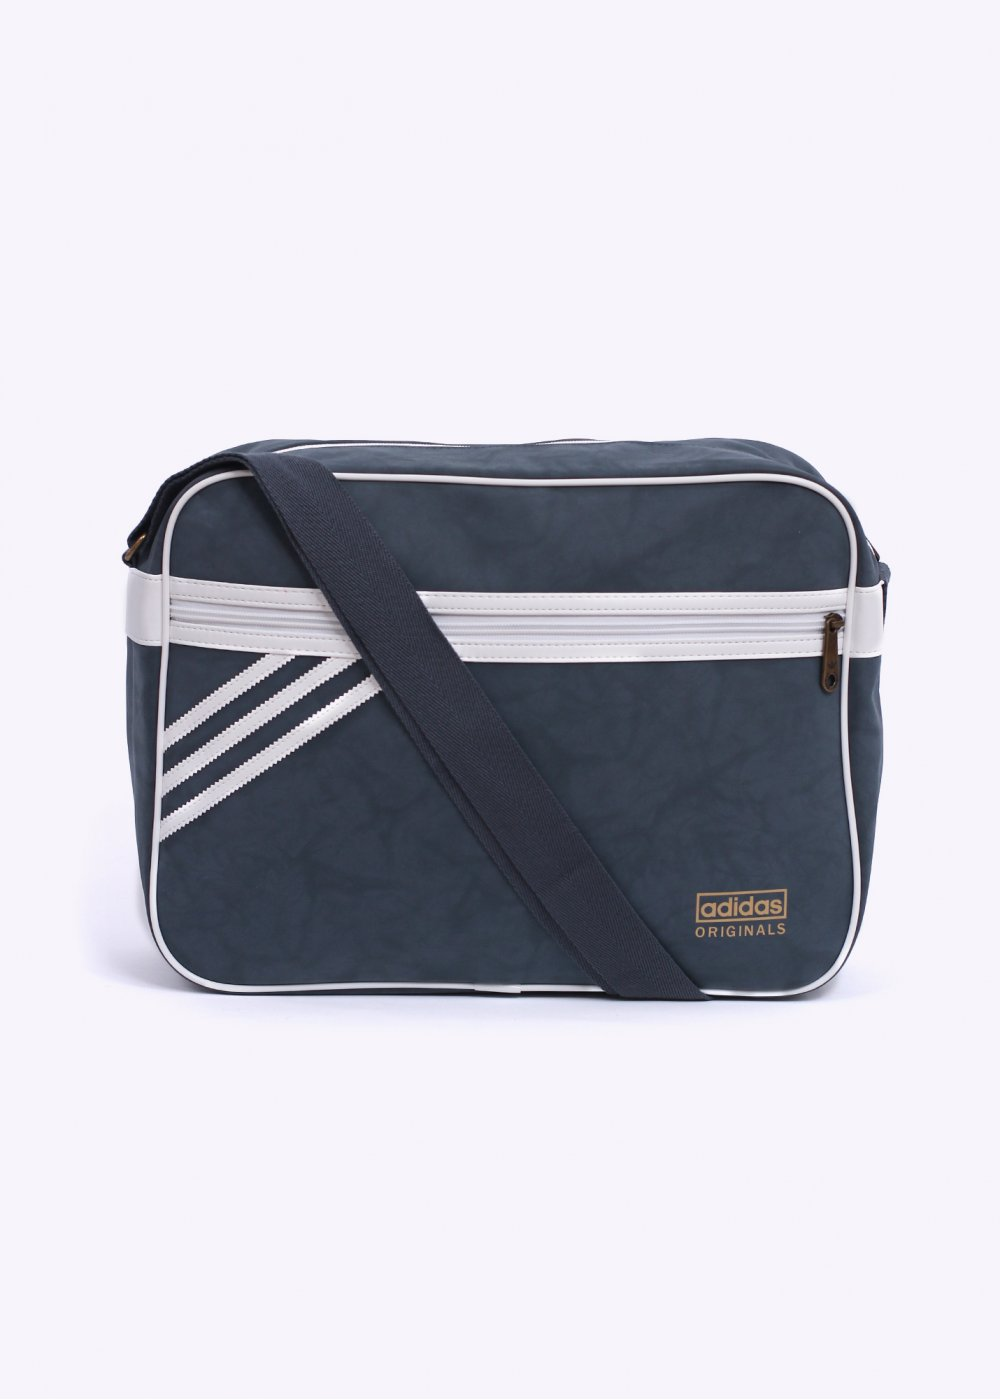 9de48db5f5 adidas Originals Airliner Suede Bag - Onix   White